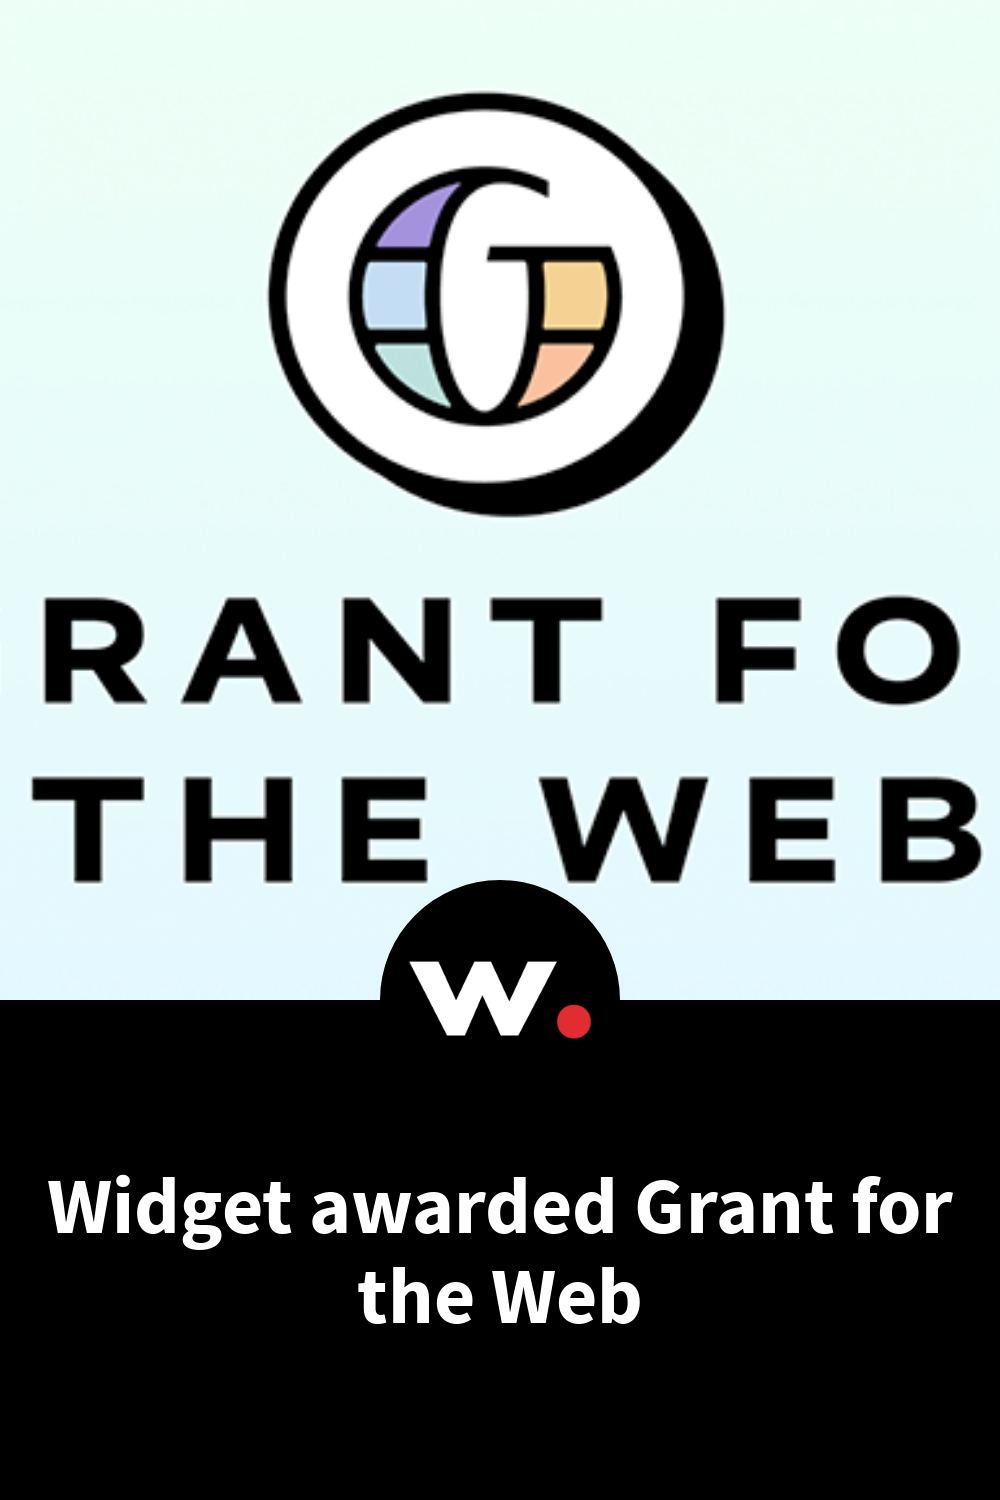 Widget awarded Grant for the Web